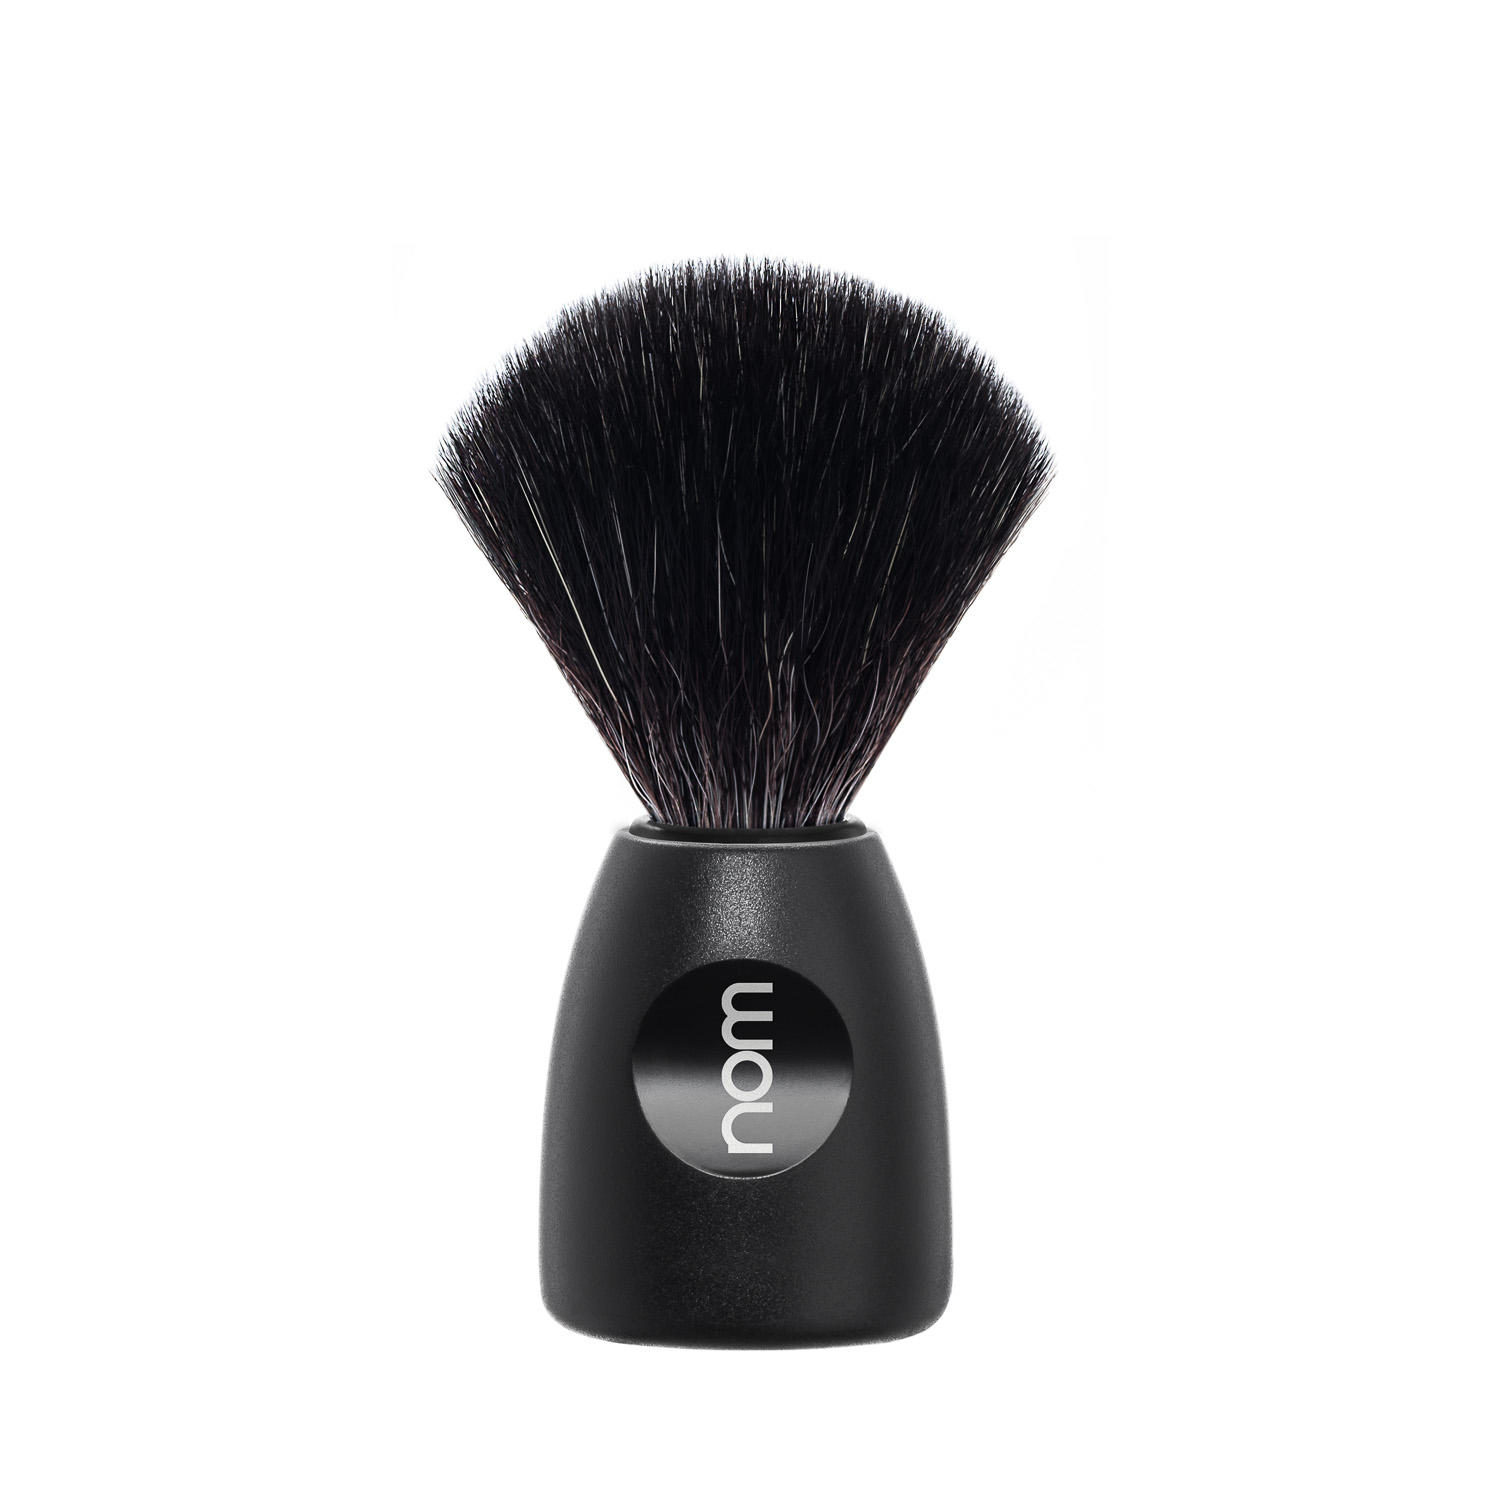 LASSE21BL NOM, LASSE, Black with Black Fibre Shaving Brush